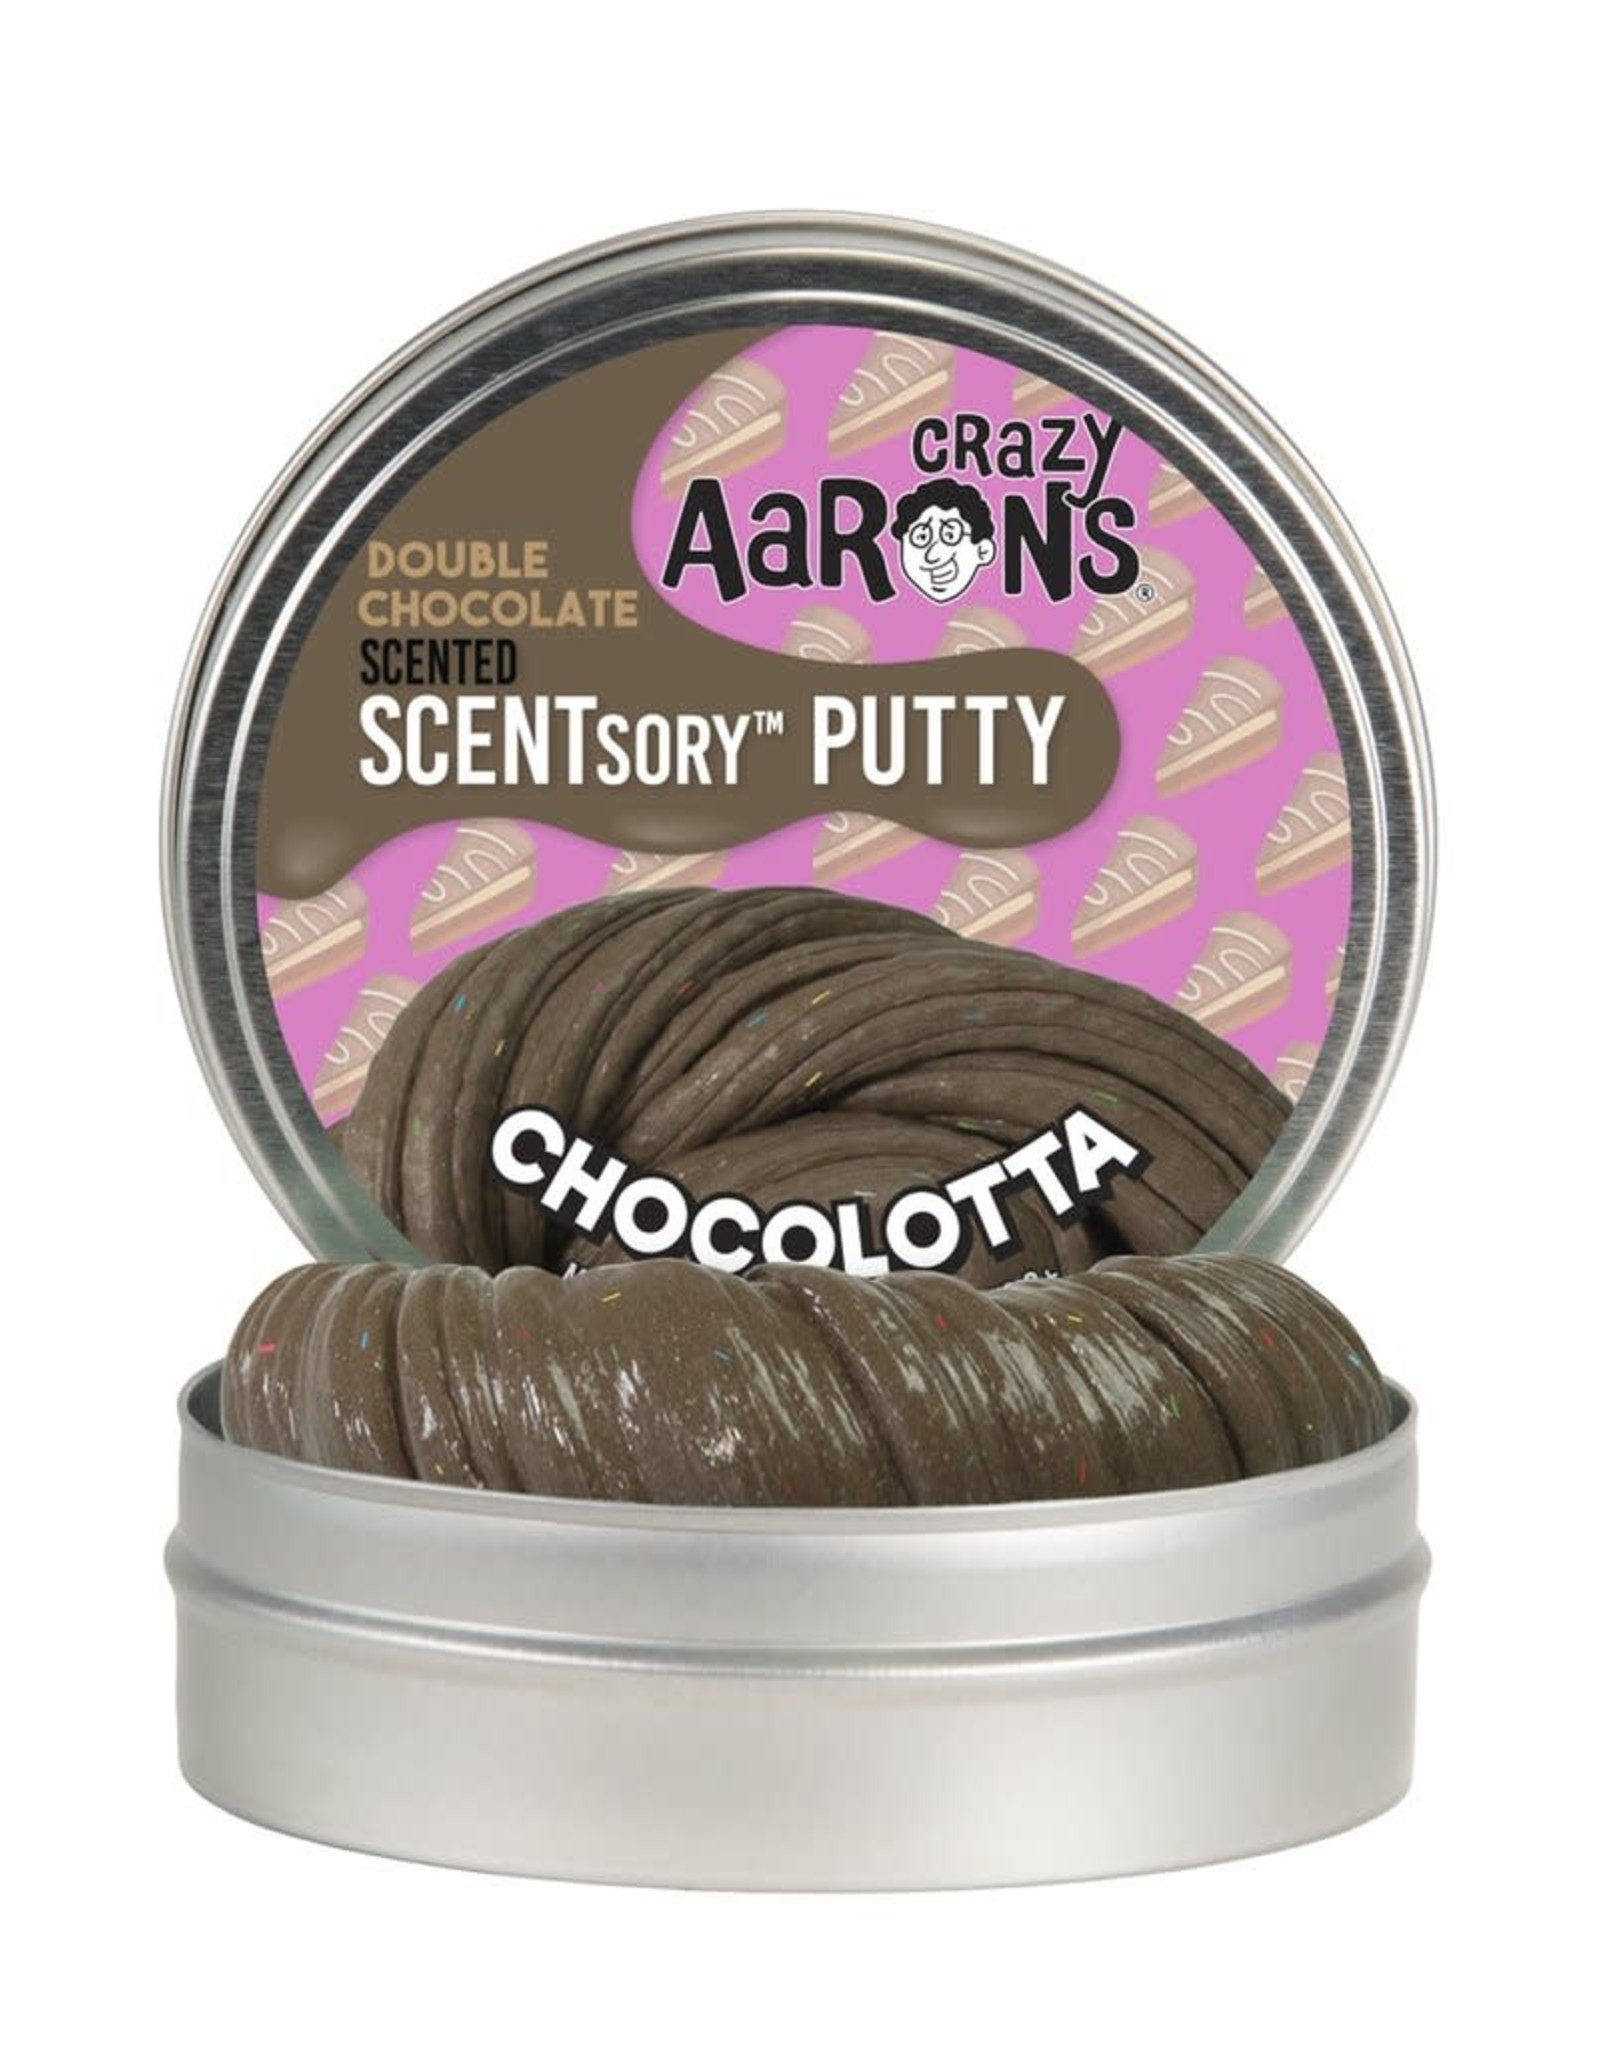 Crazy Aaron's Scentsory Putty Chocolotta 2.75""